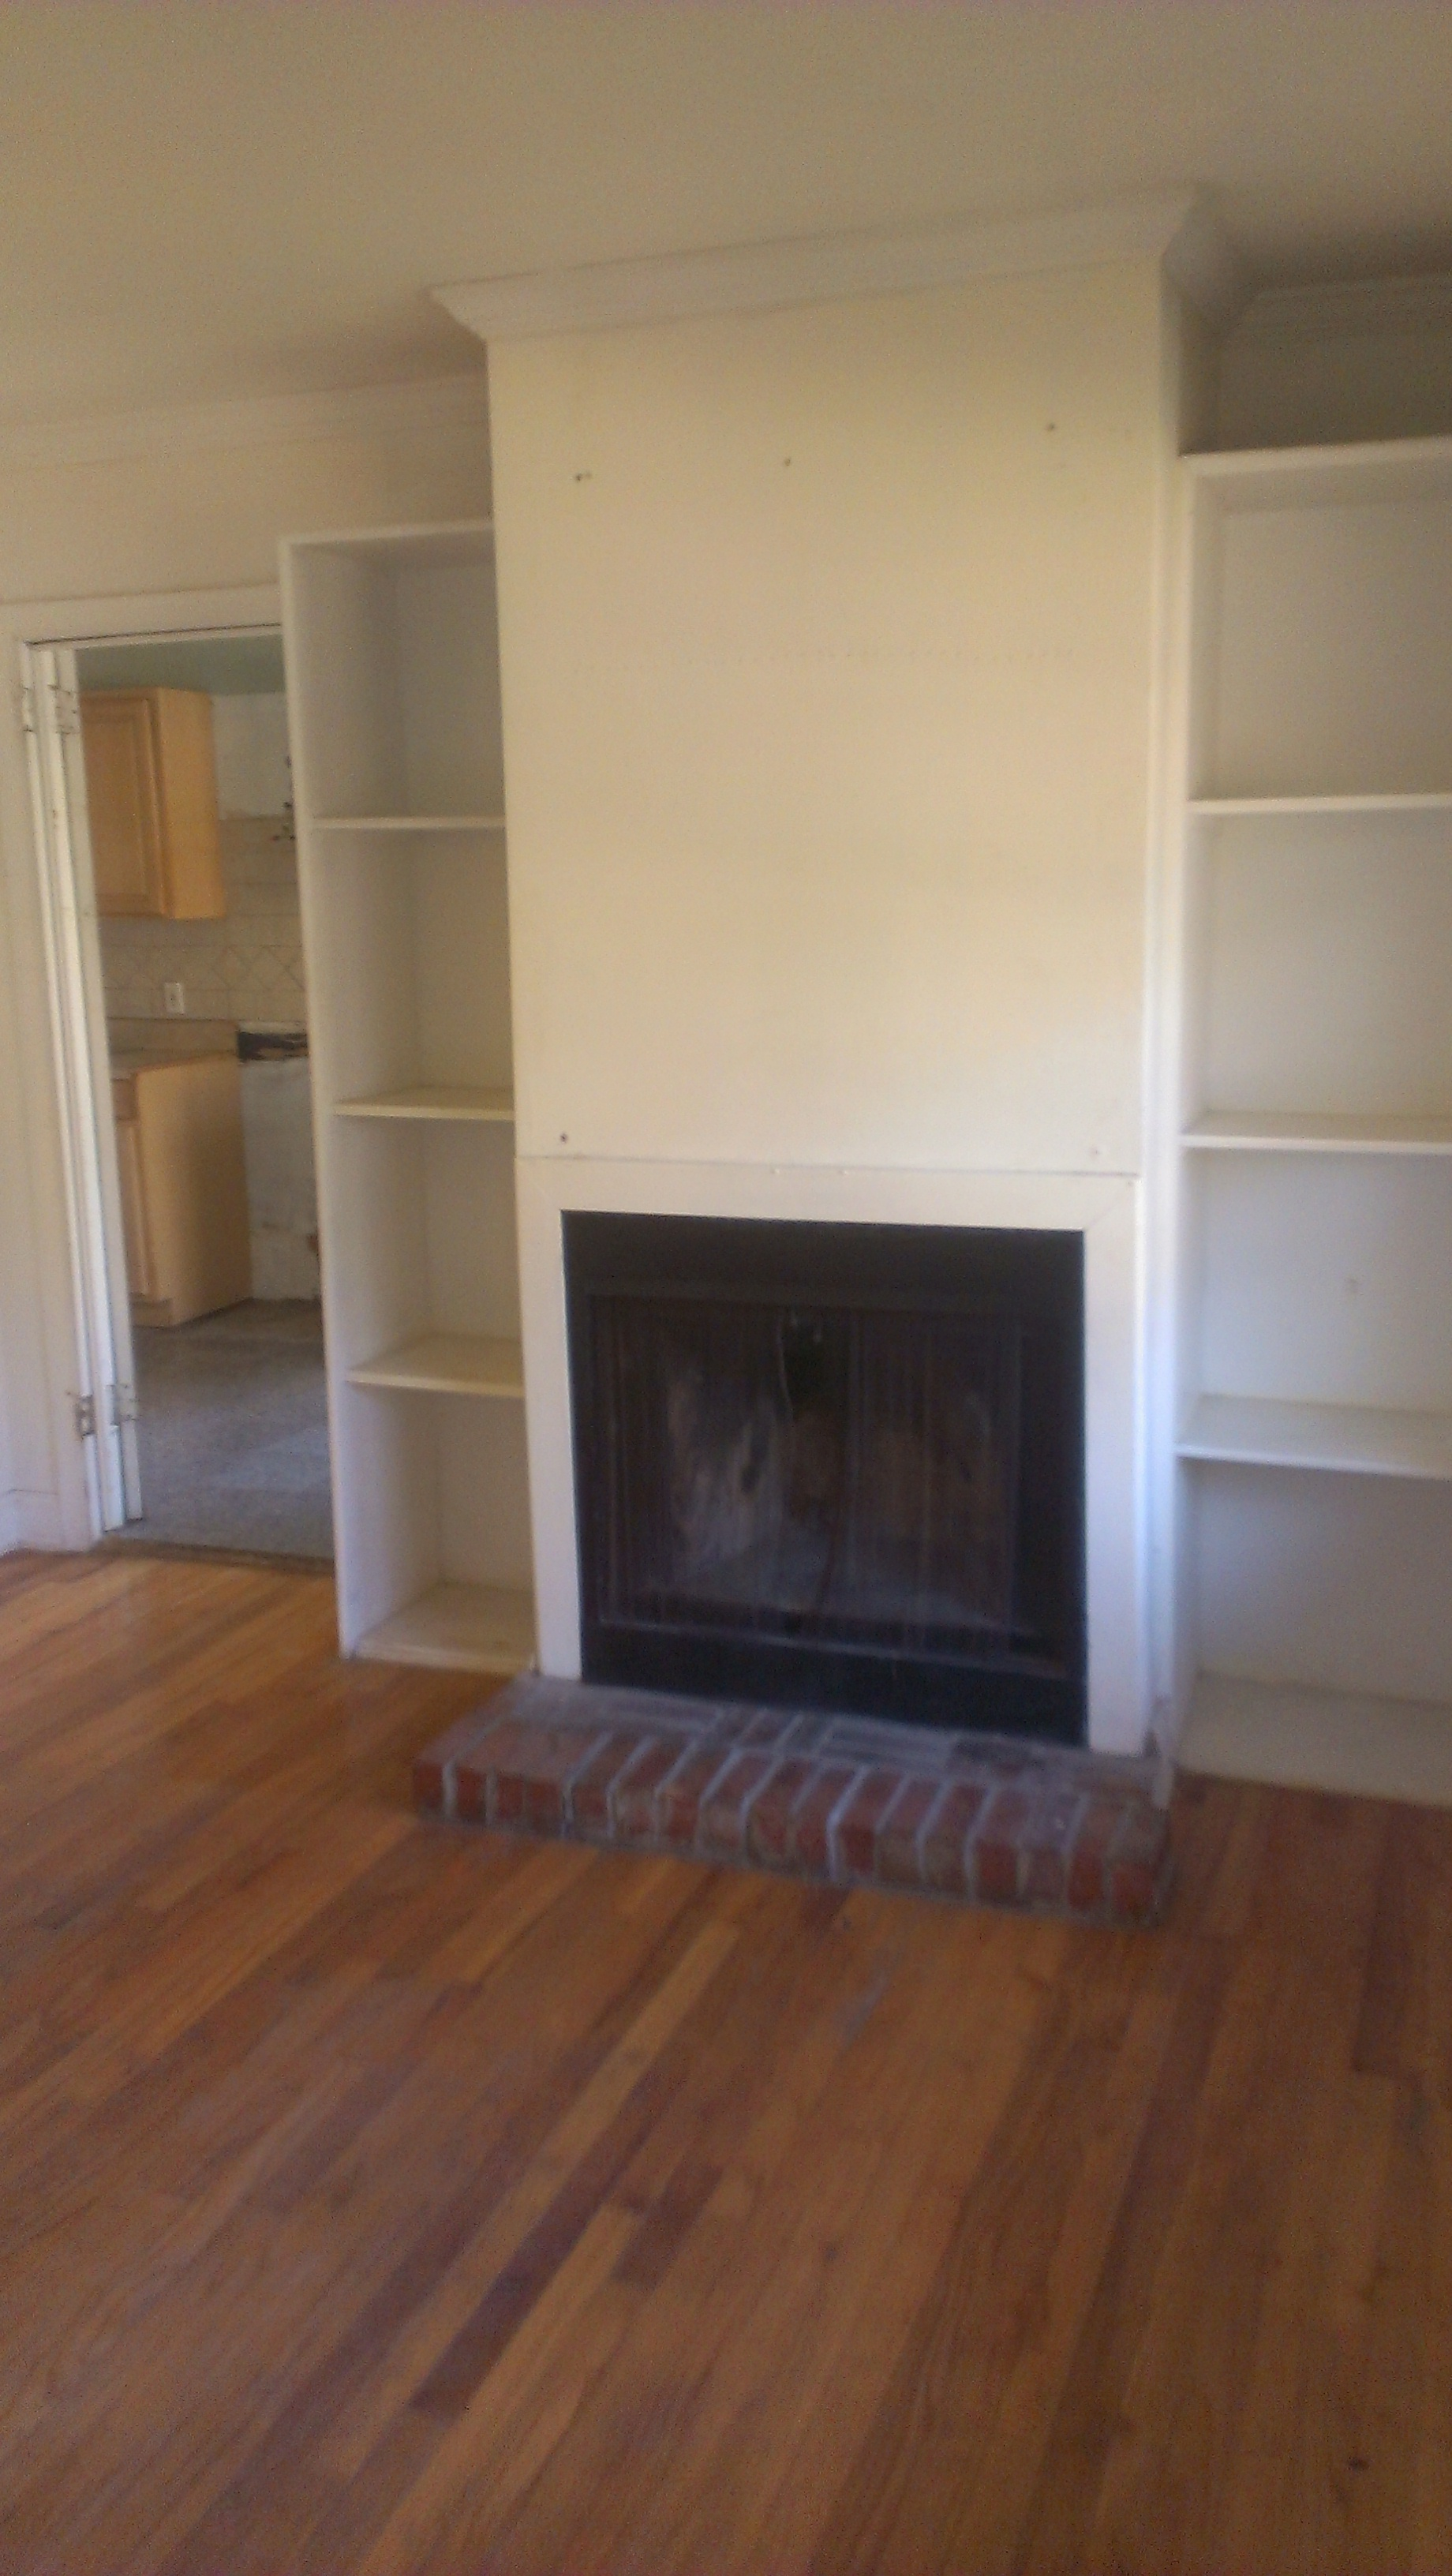 FIREPLACE-BEFORE